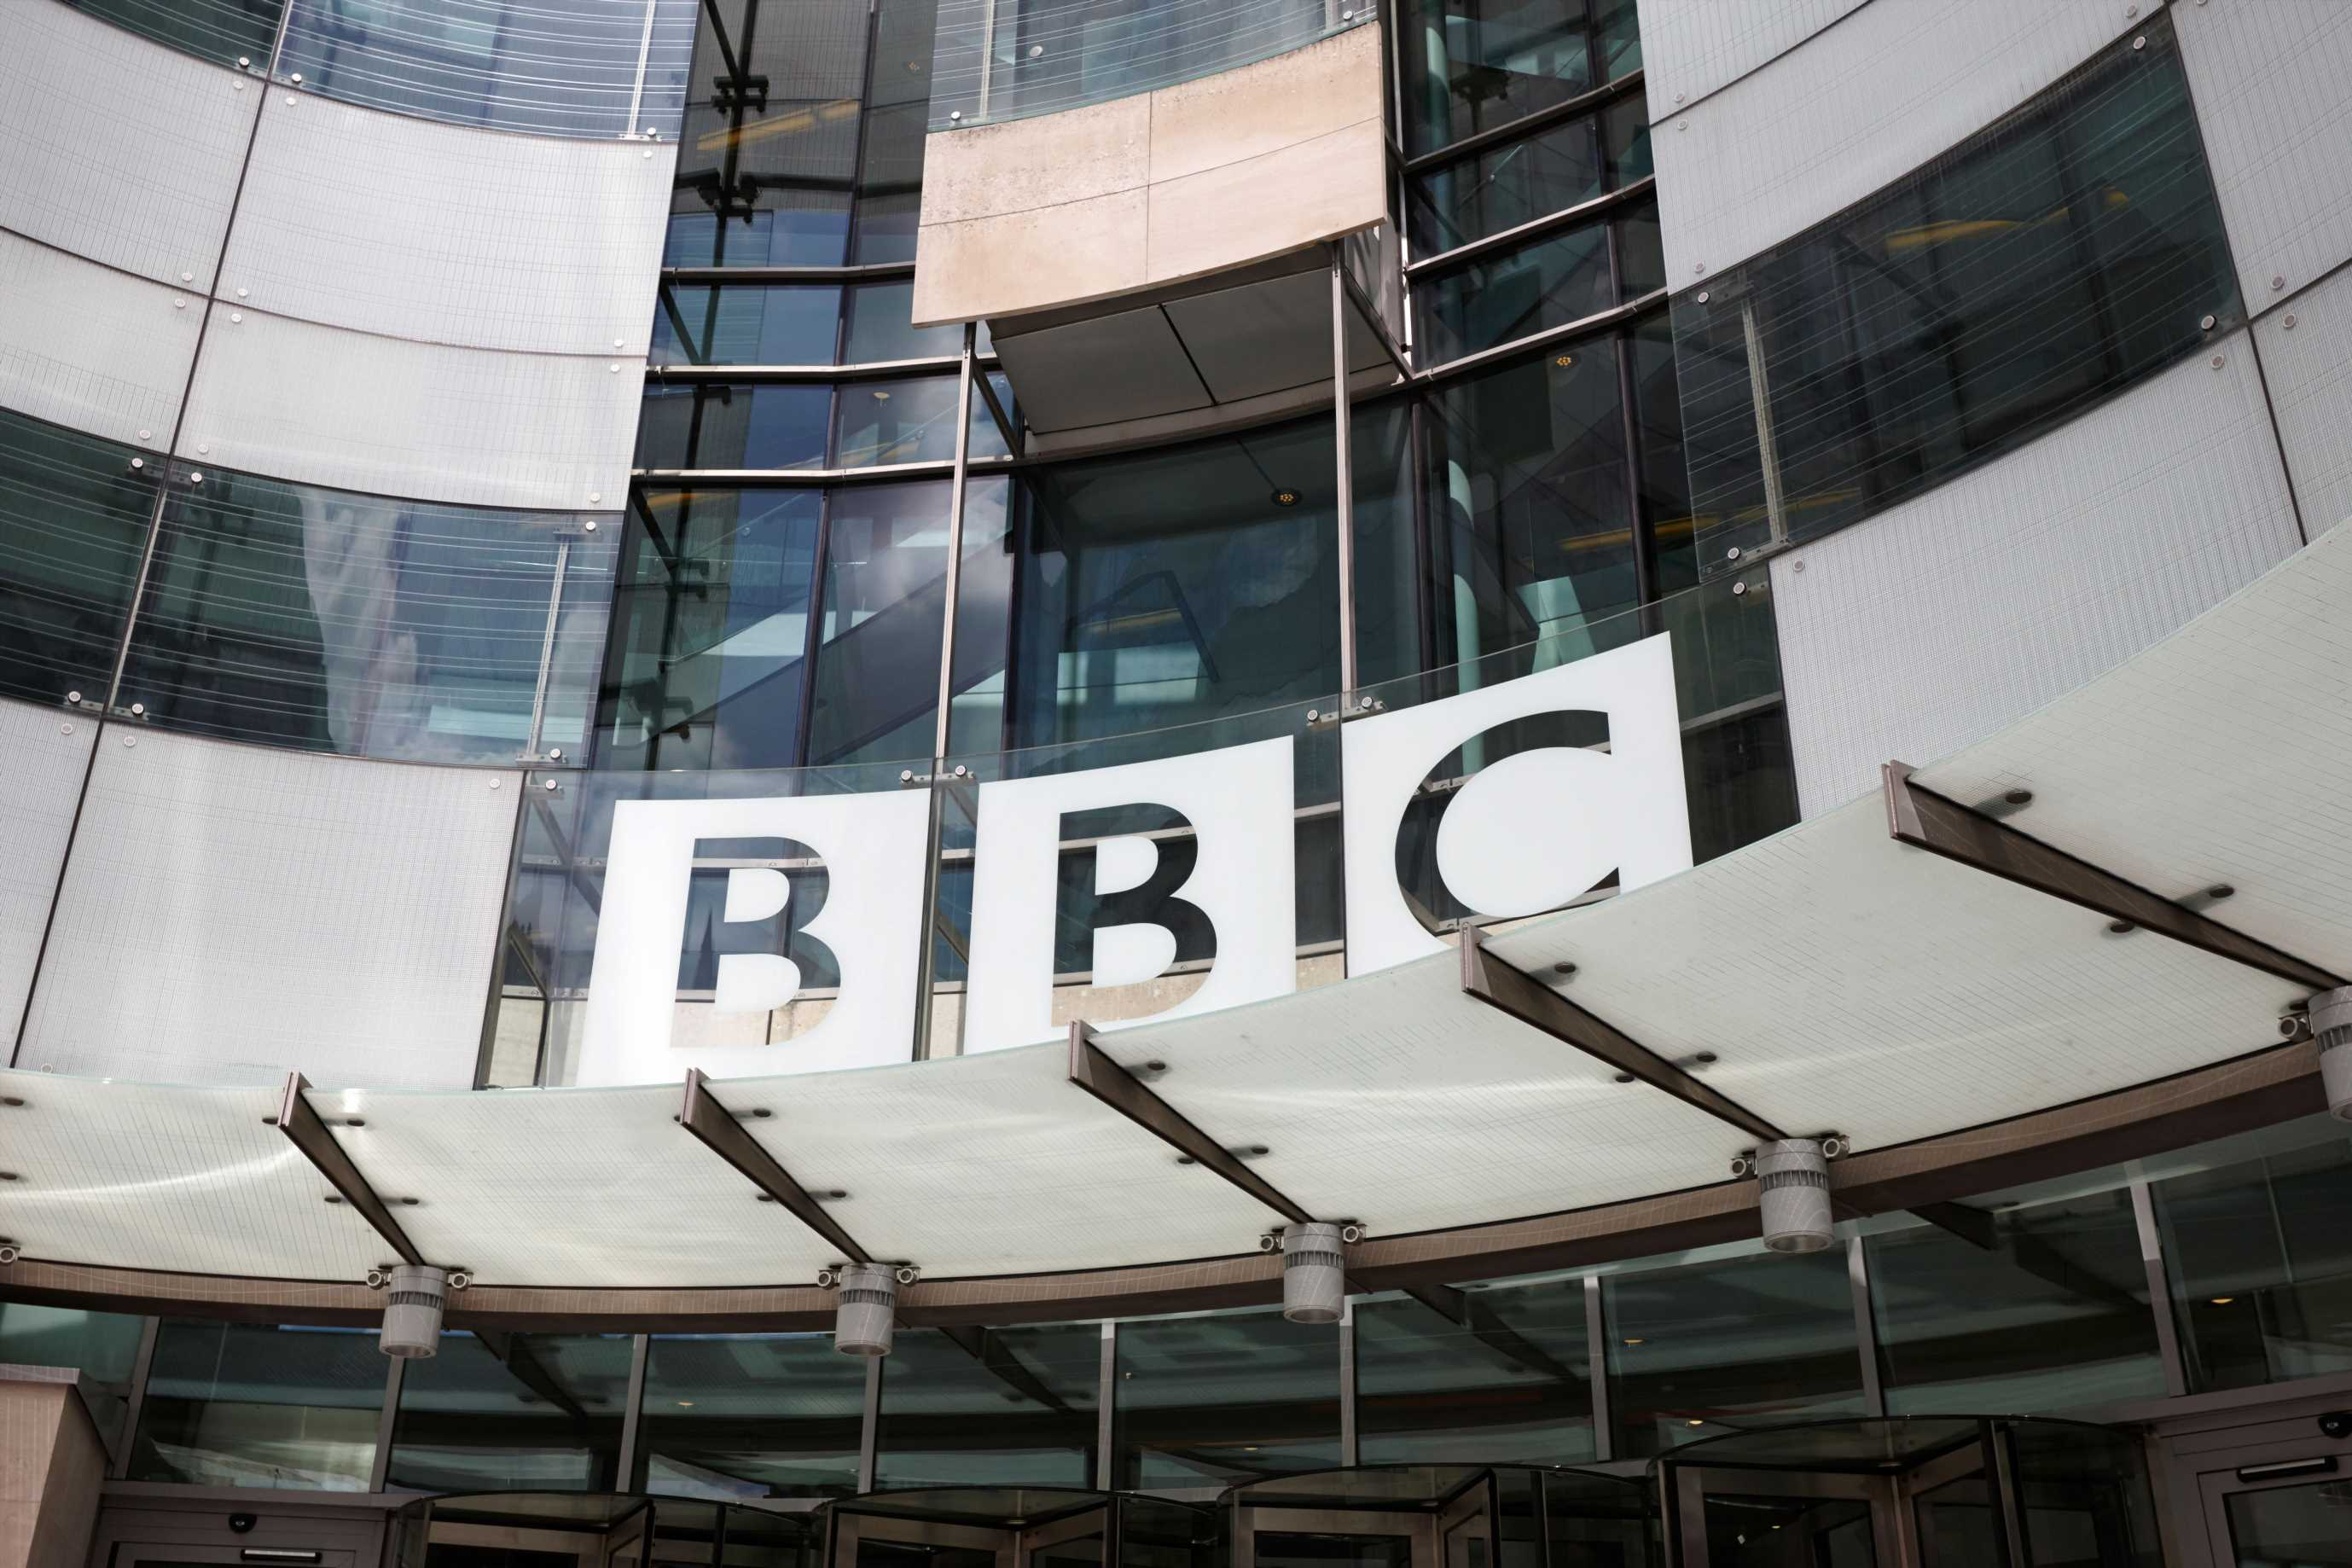 BBC bosses use licence fee payers' money to fund lavish flights, with one claiming almost £7,000 for Miami trip